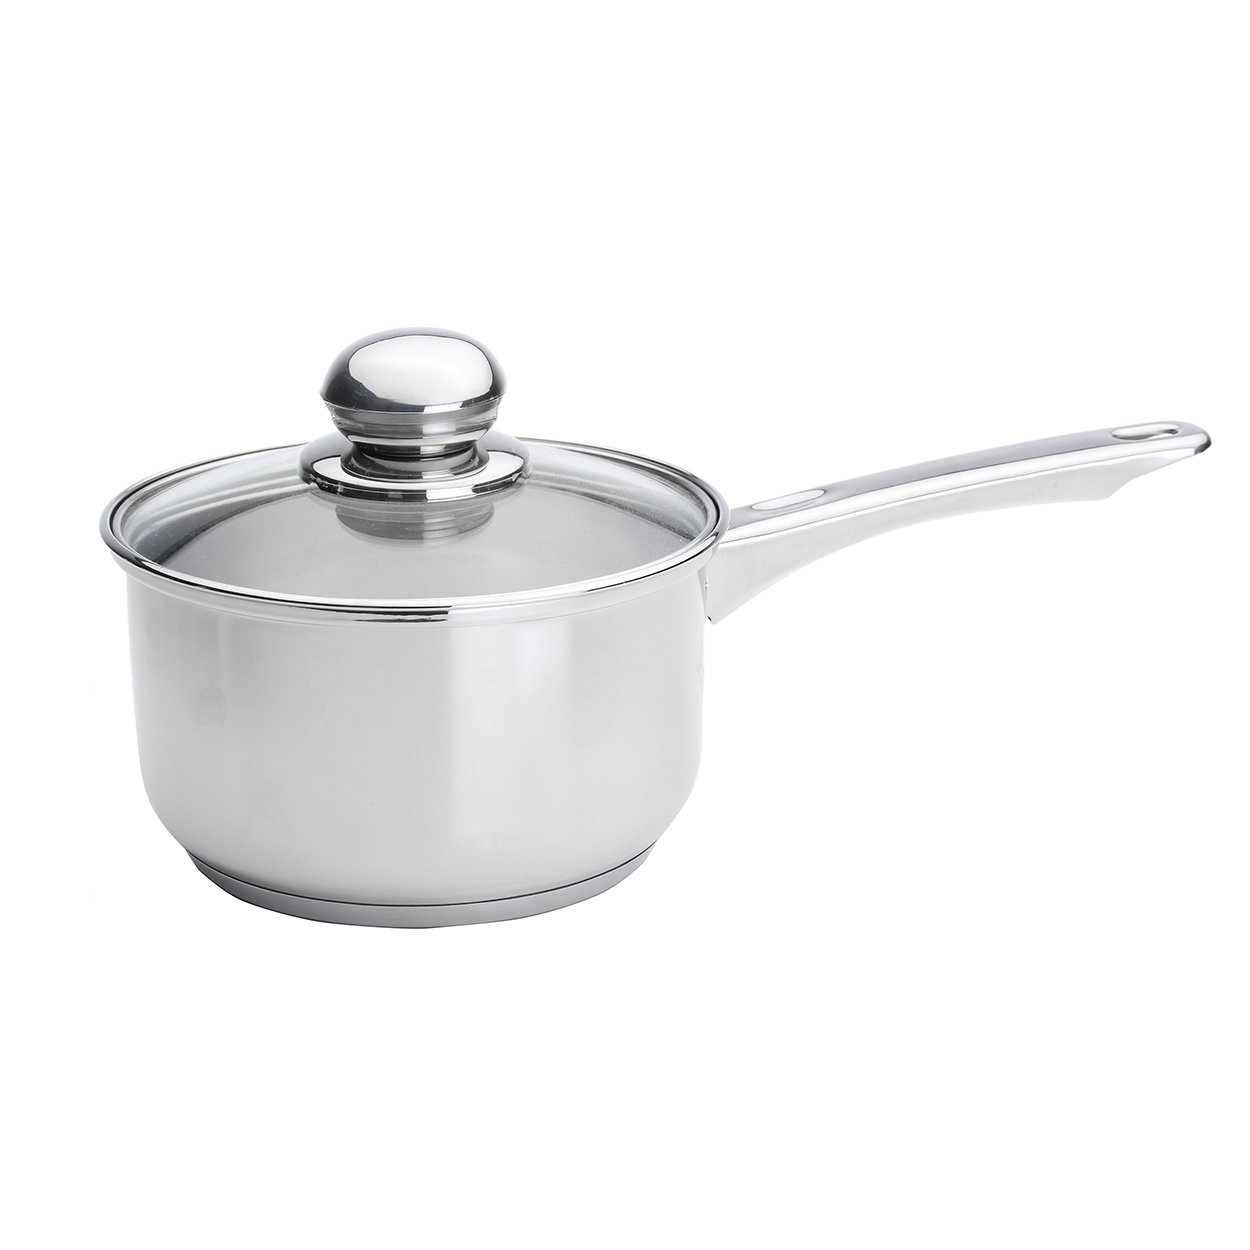 Kinetic Classicor Series Stainless-Steel 3-Quart Saucepan with Lid 29103